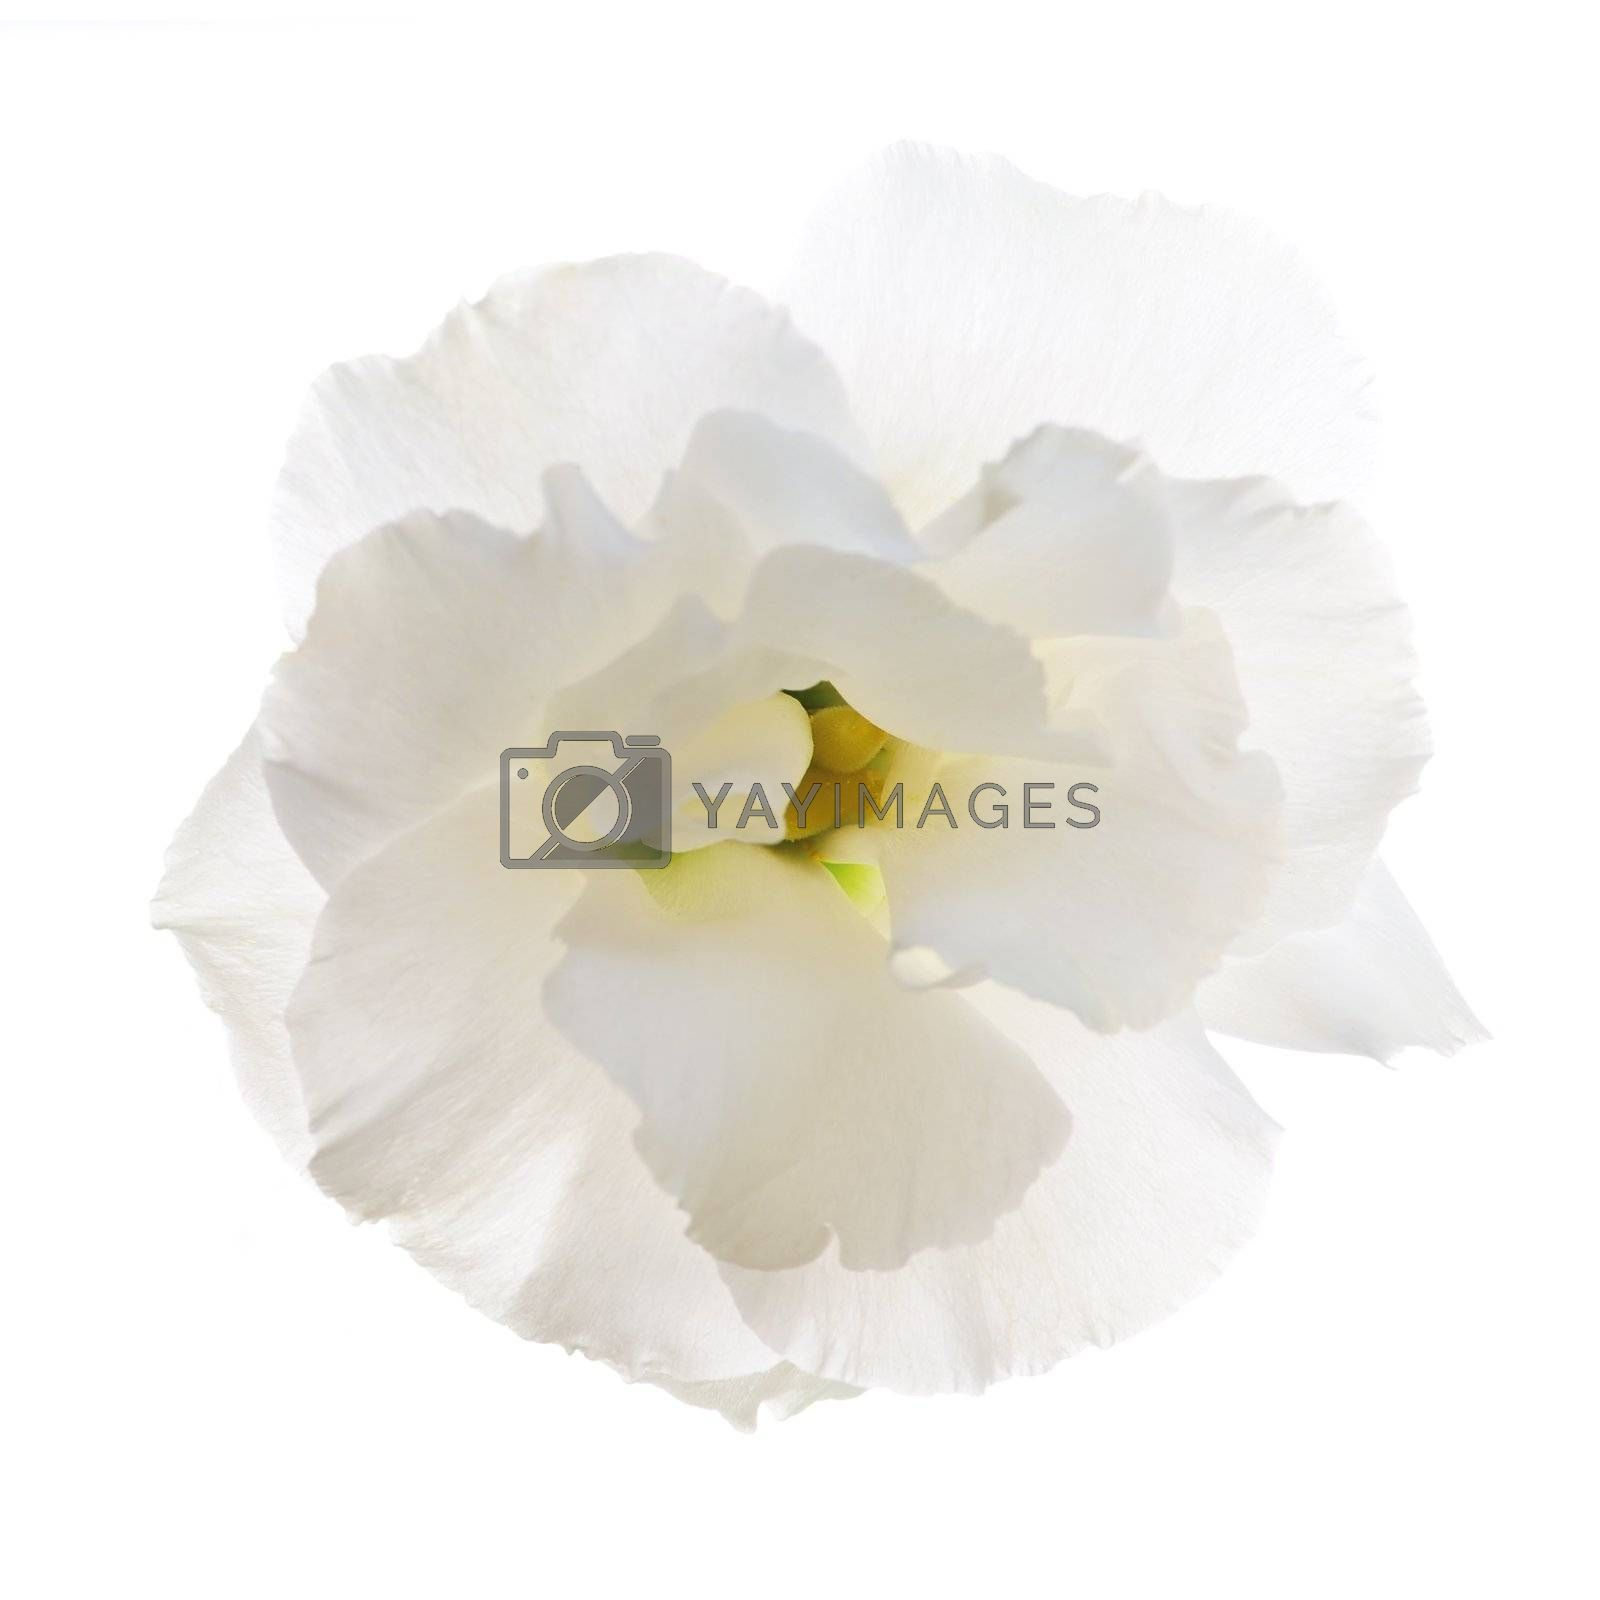 Flower called prairie rose isolated on white background